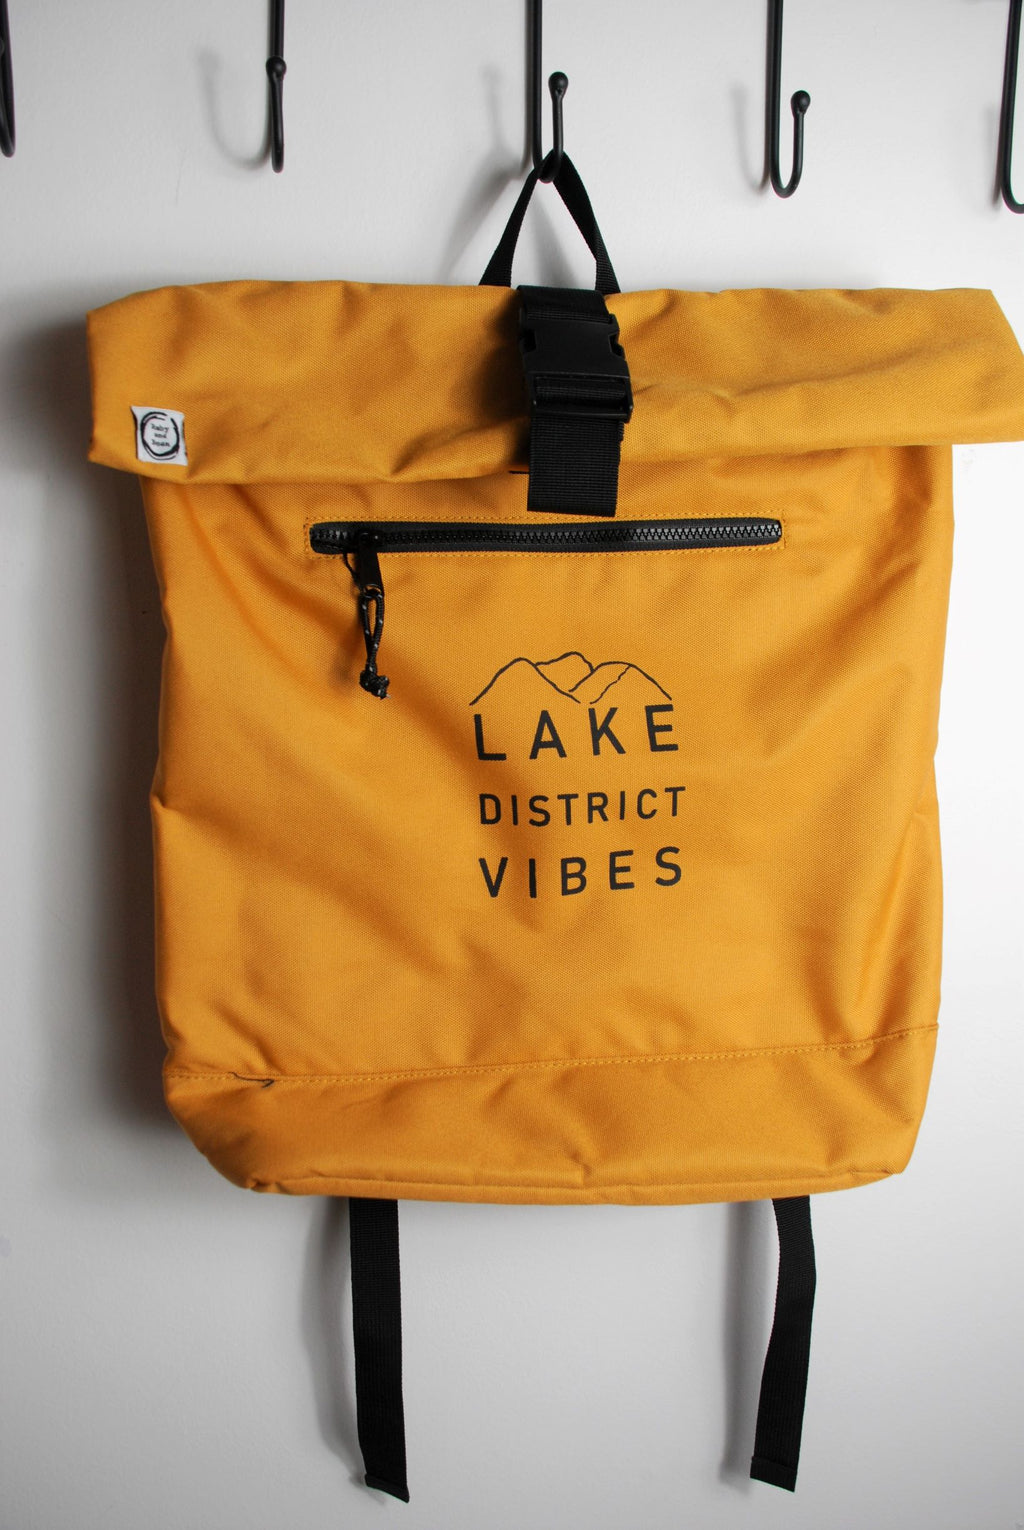 Lake District Vibes Recycled Rucksack